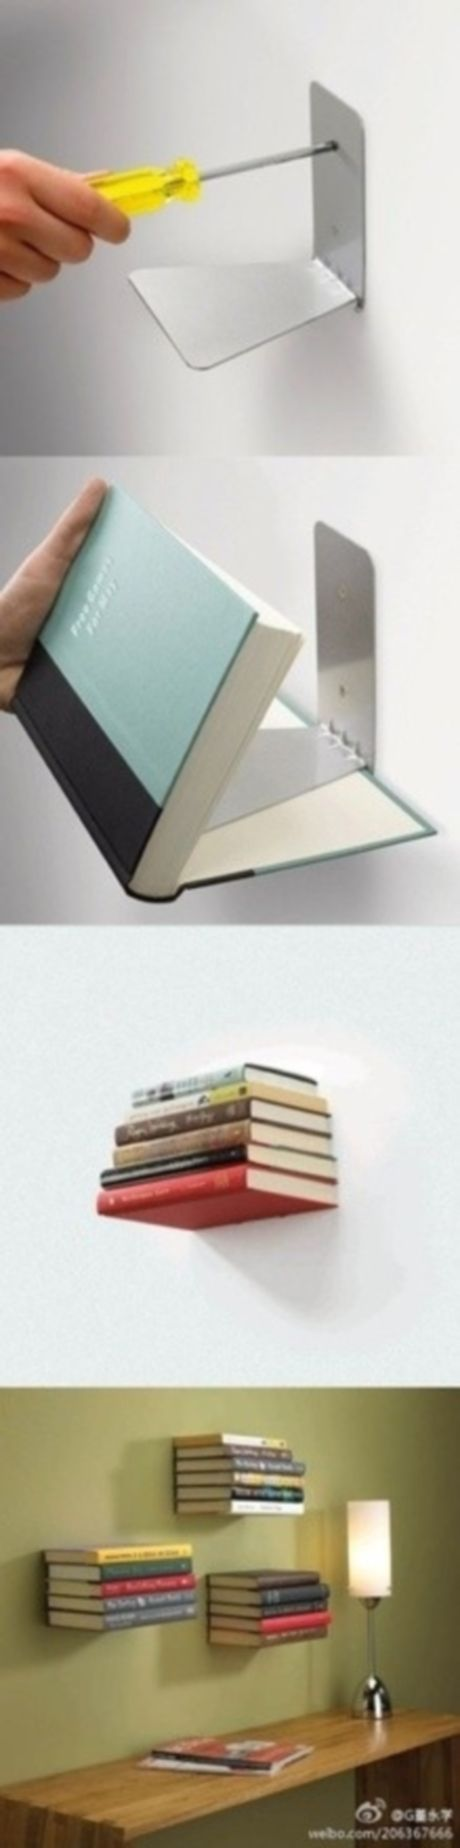 25 best ideas about invisible bookshelf on pinterest How to make an invisible bookshelf